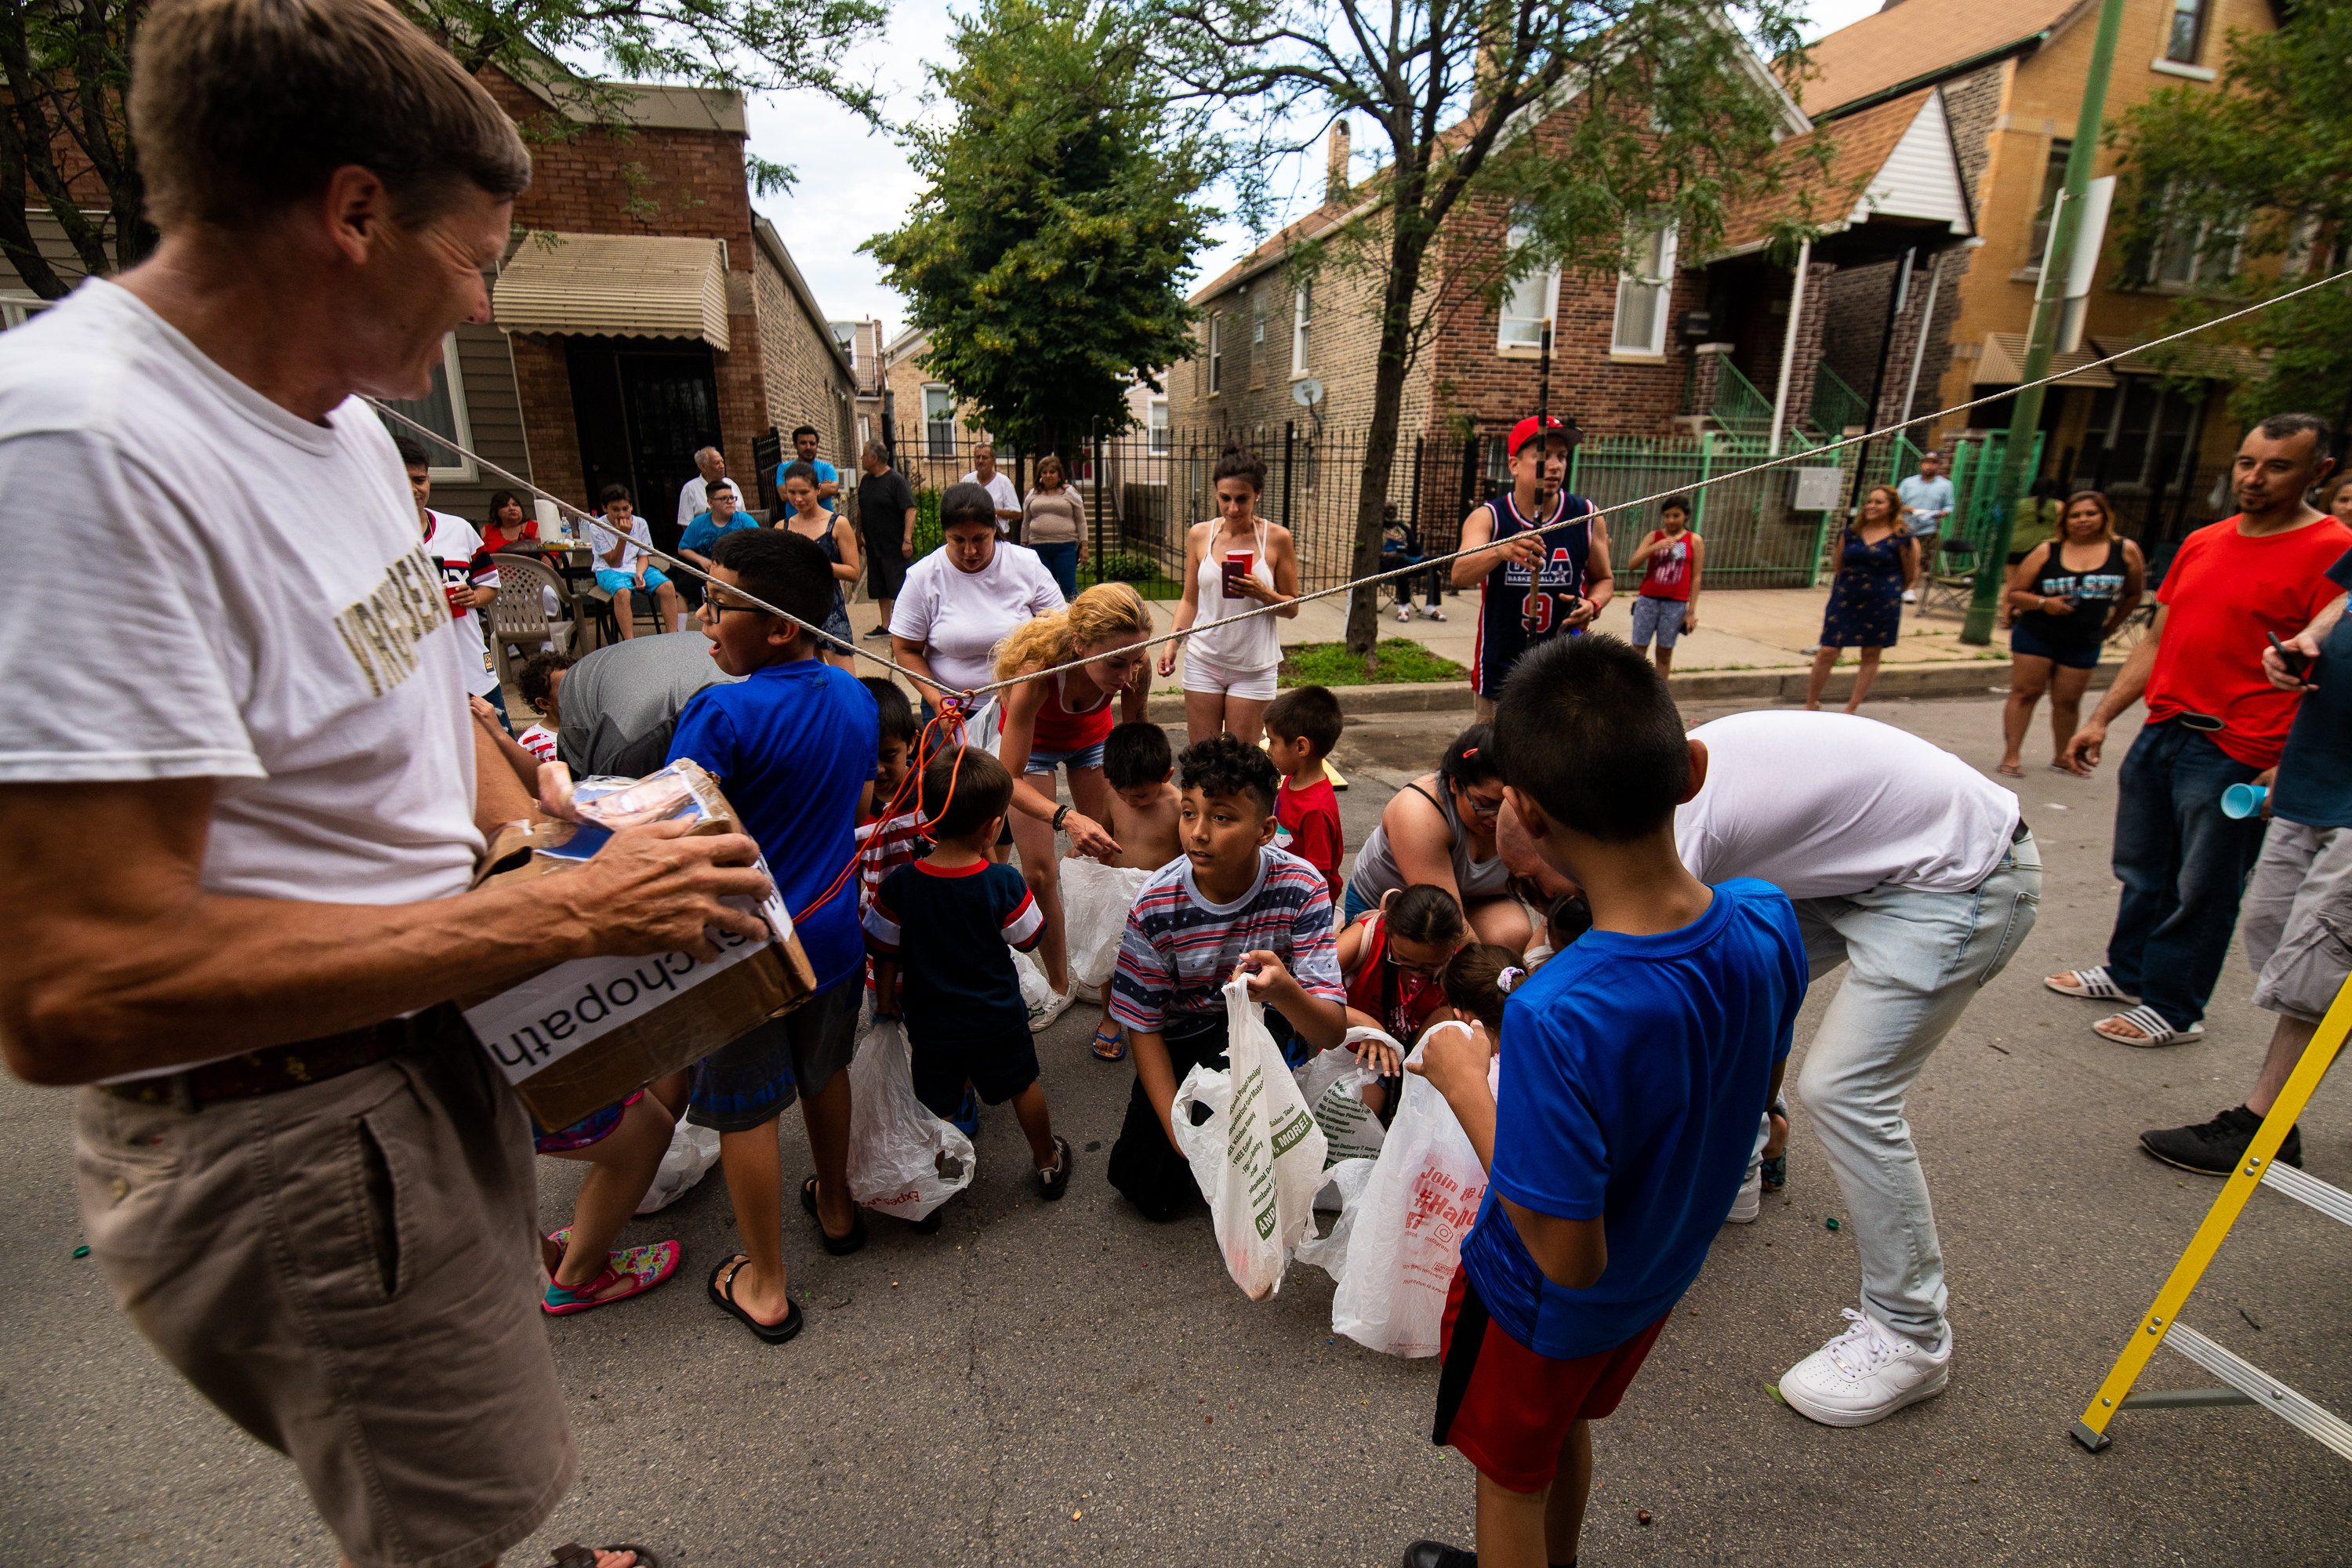 Children gather round to gather the candy that fell from a homemade Donald Trump Piñata at a Fourth of July block party in the Pilsen neighborhood, Thursday, July 4, 2019, in Chicago